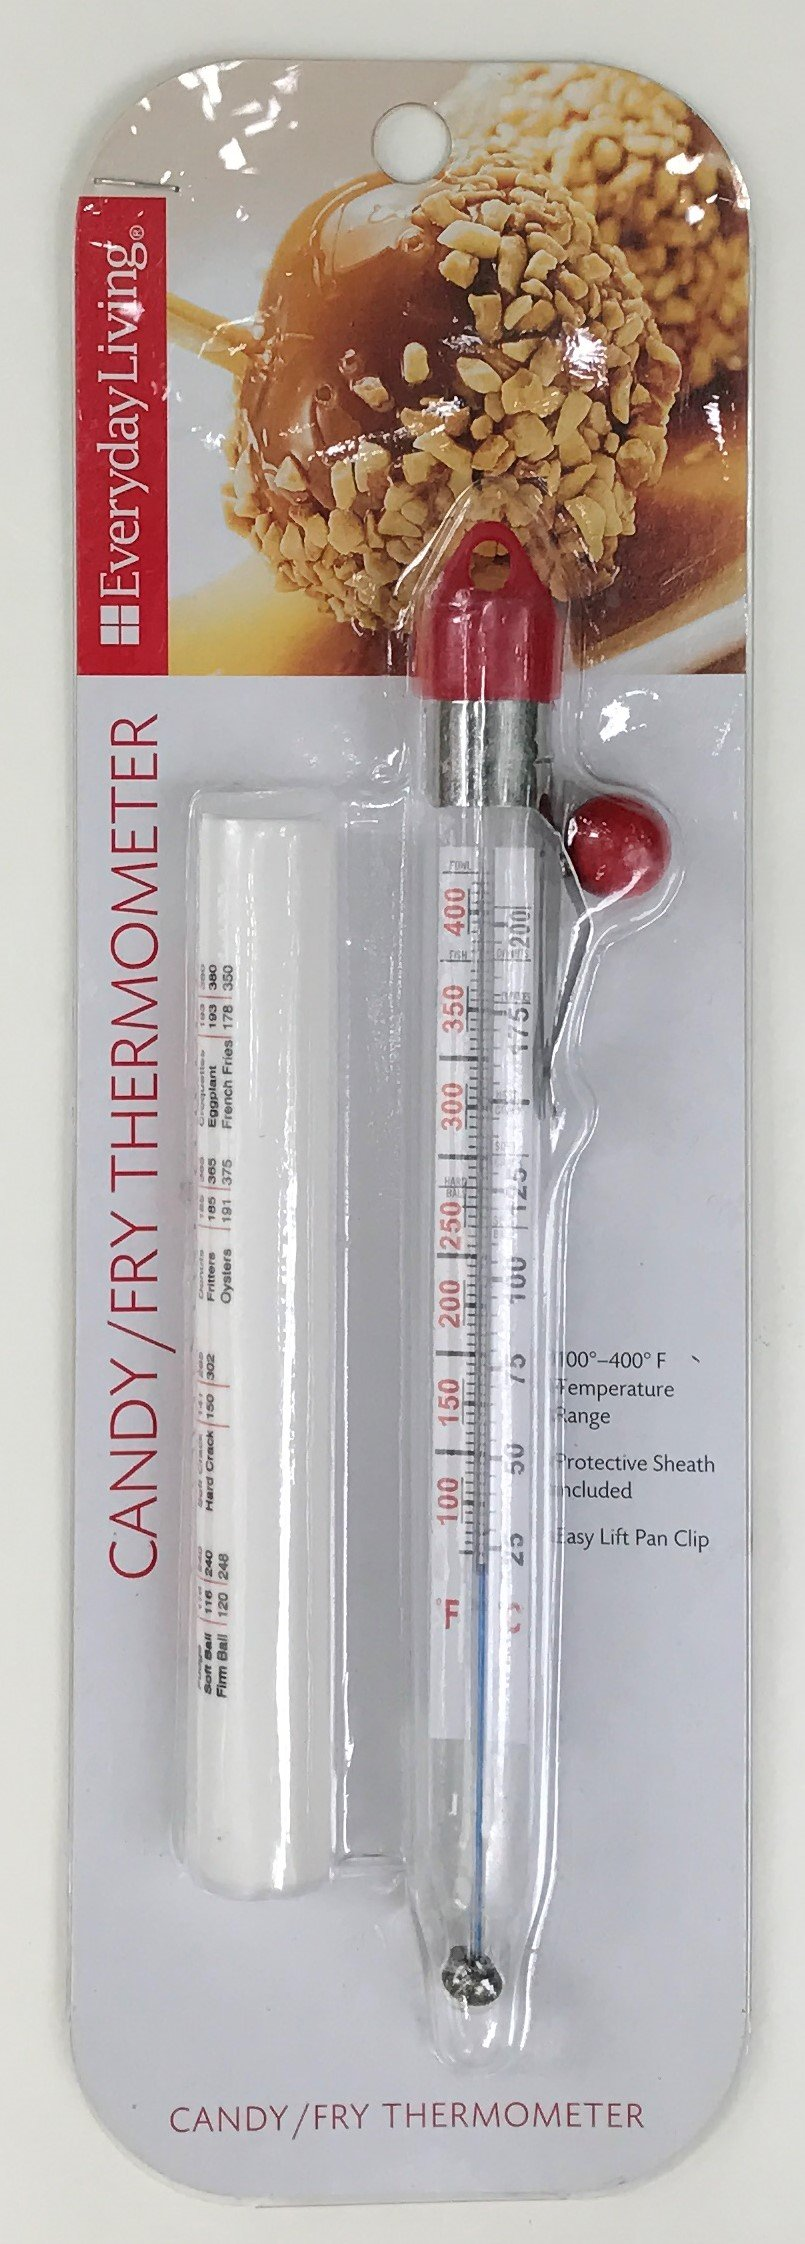 Everyday Living - Candy / Deep Fry Thermometer by Everyday Living